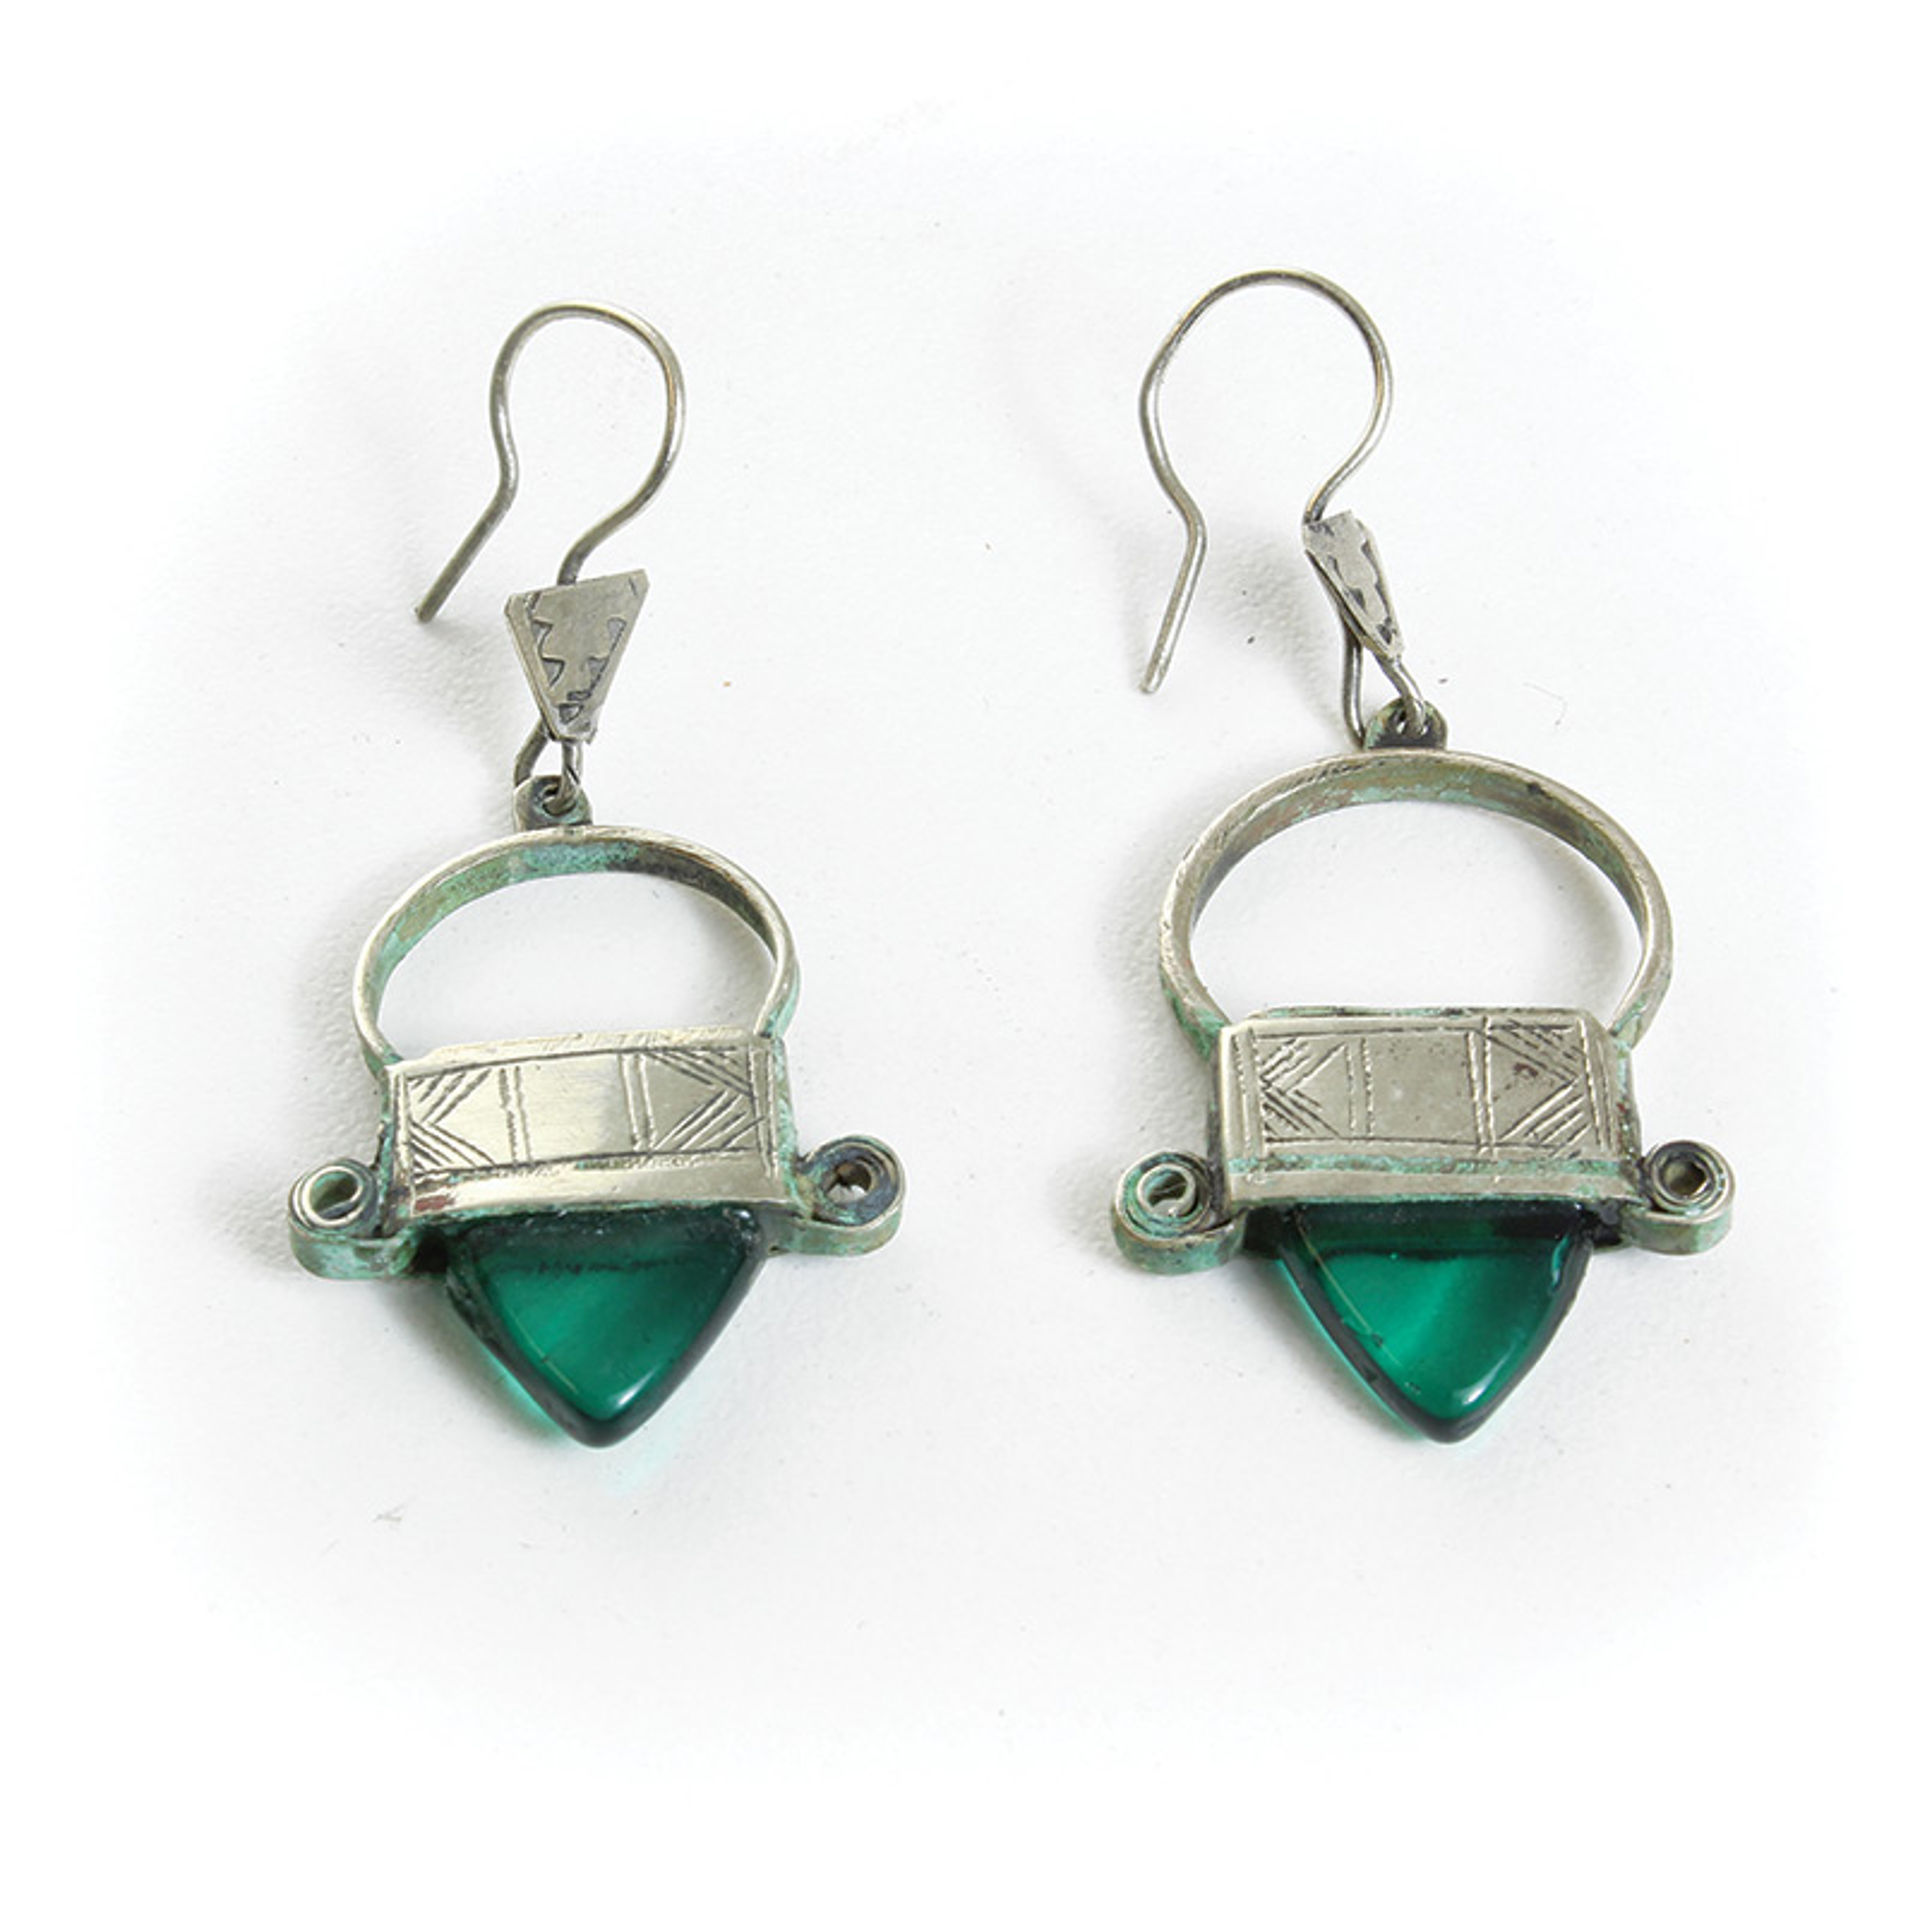 Picture of Tuareg Silver Earrings - Green Jewel